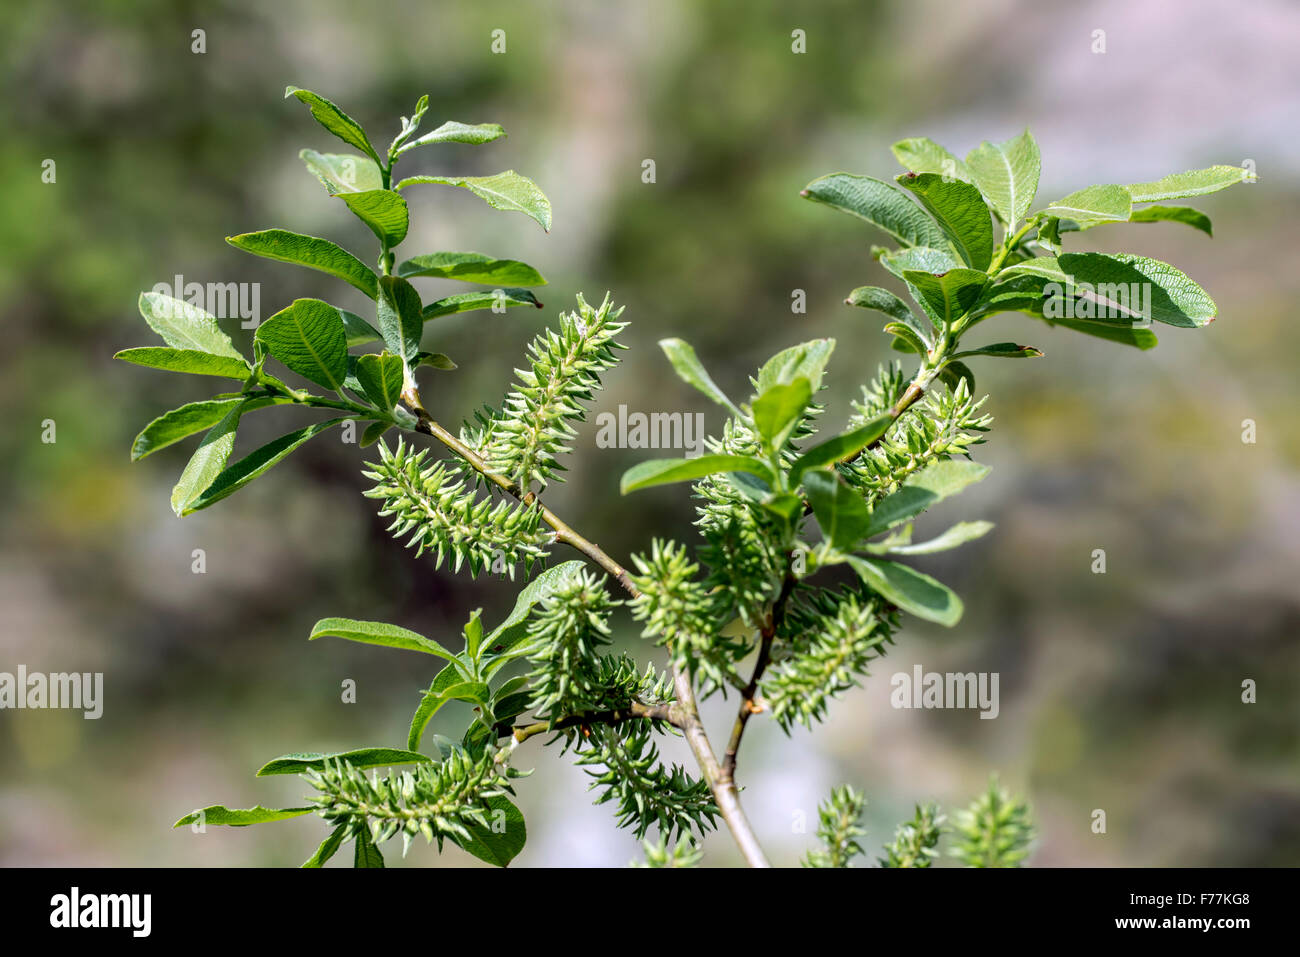 Alpine Willow / Bald willow (Salix glabra) close up of leaves and female catkins / fruiting bodies in spring - Stock Image